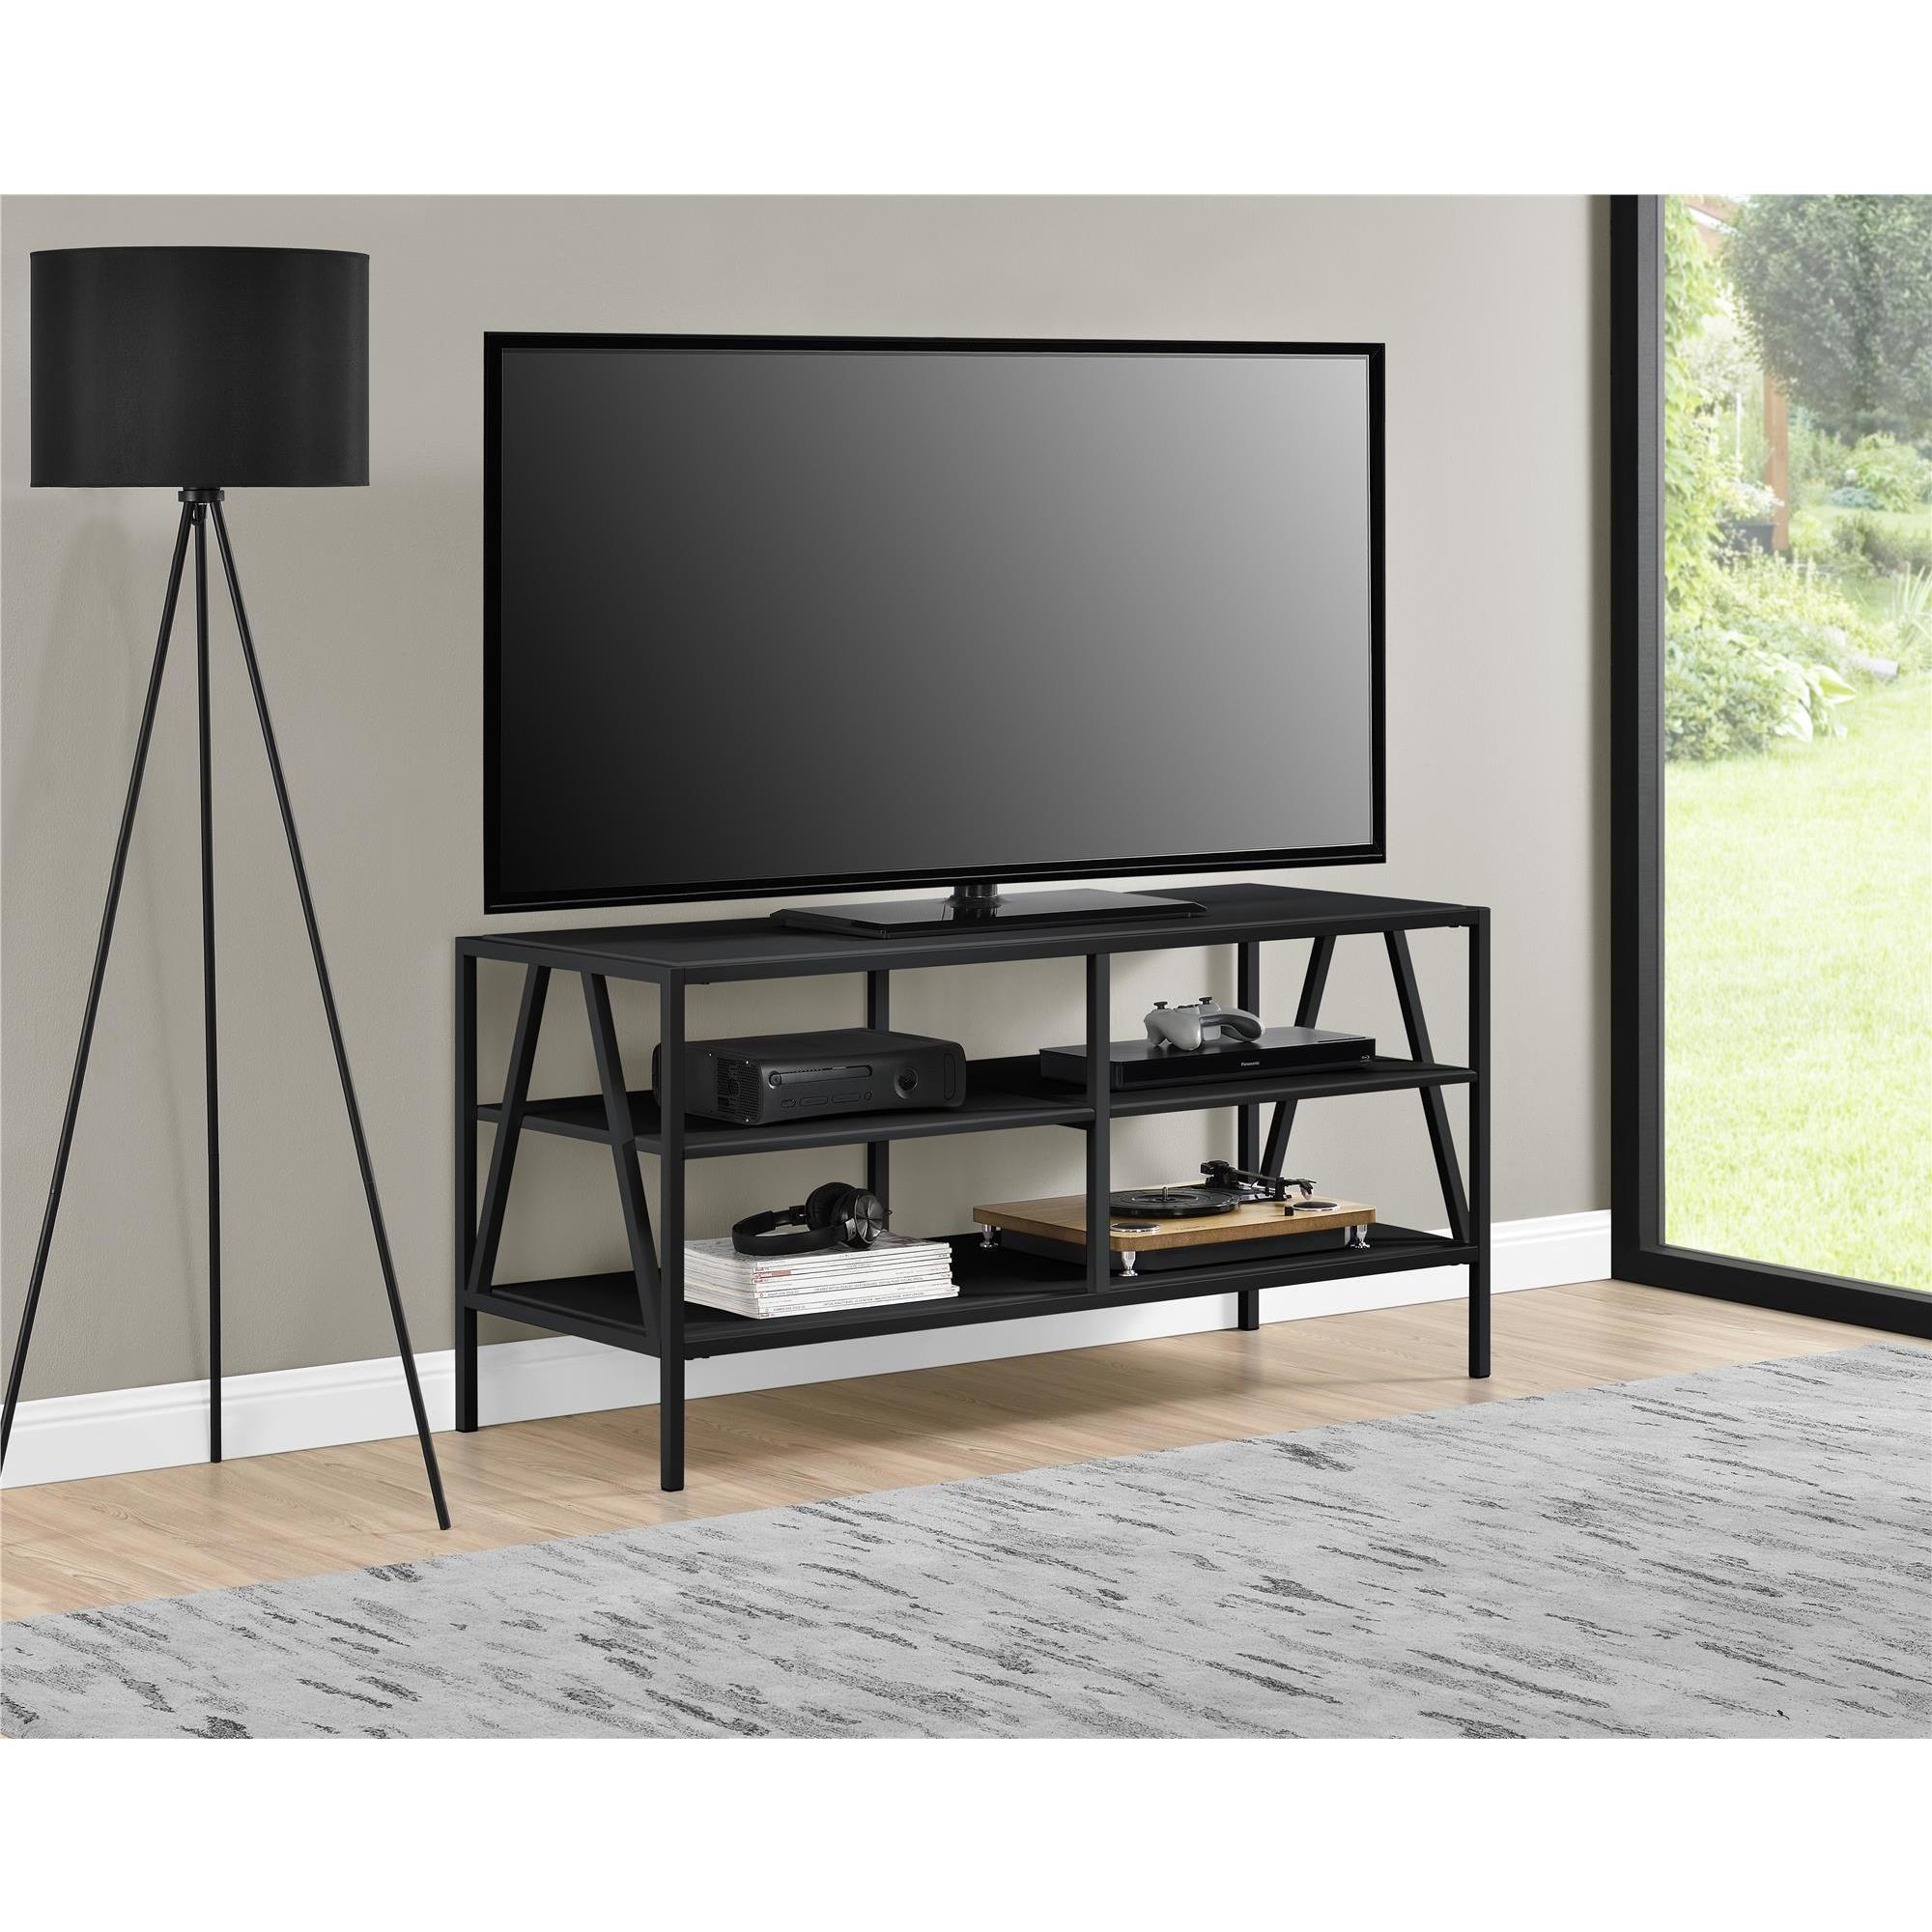 Shop Novogratz Avondale 50 Inch Tv Stand 50 Inches Free Shipping